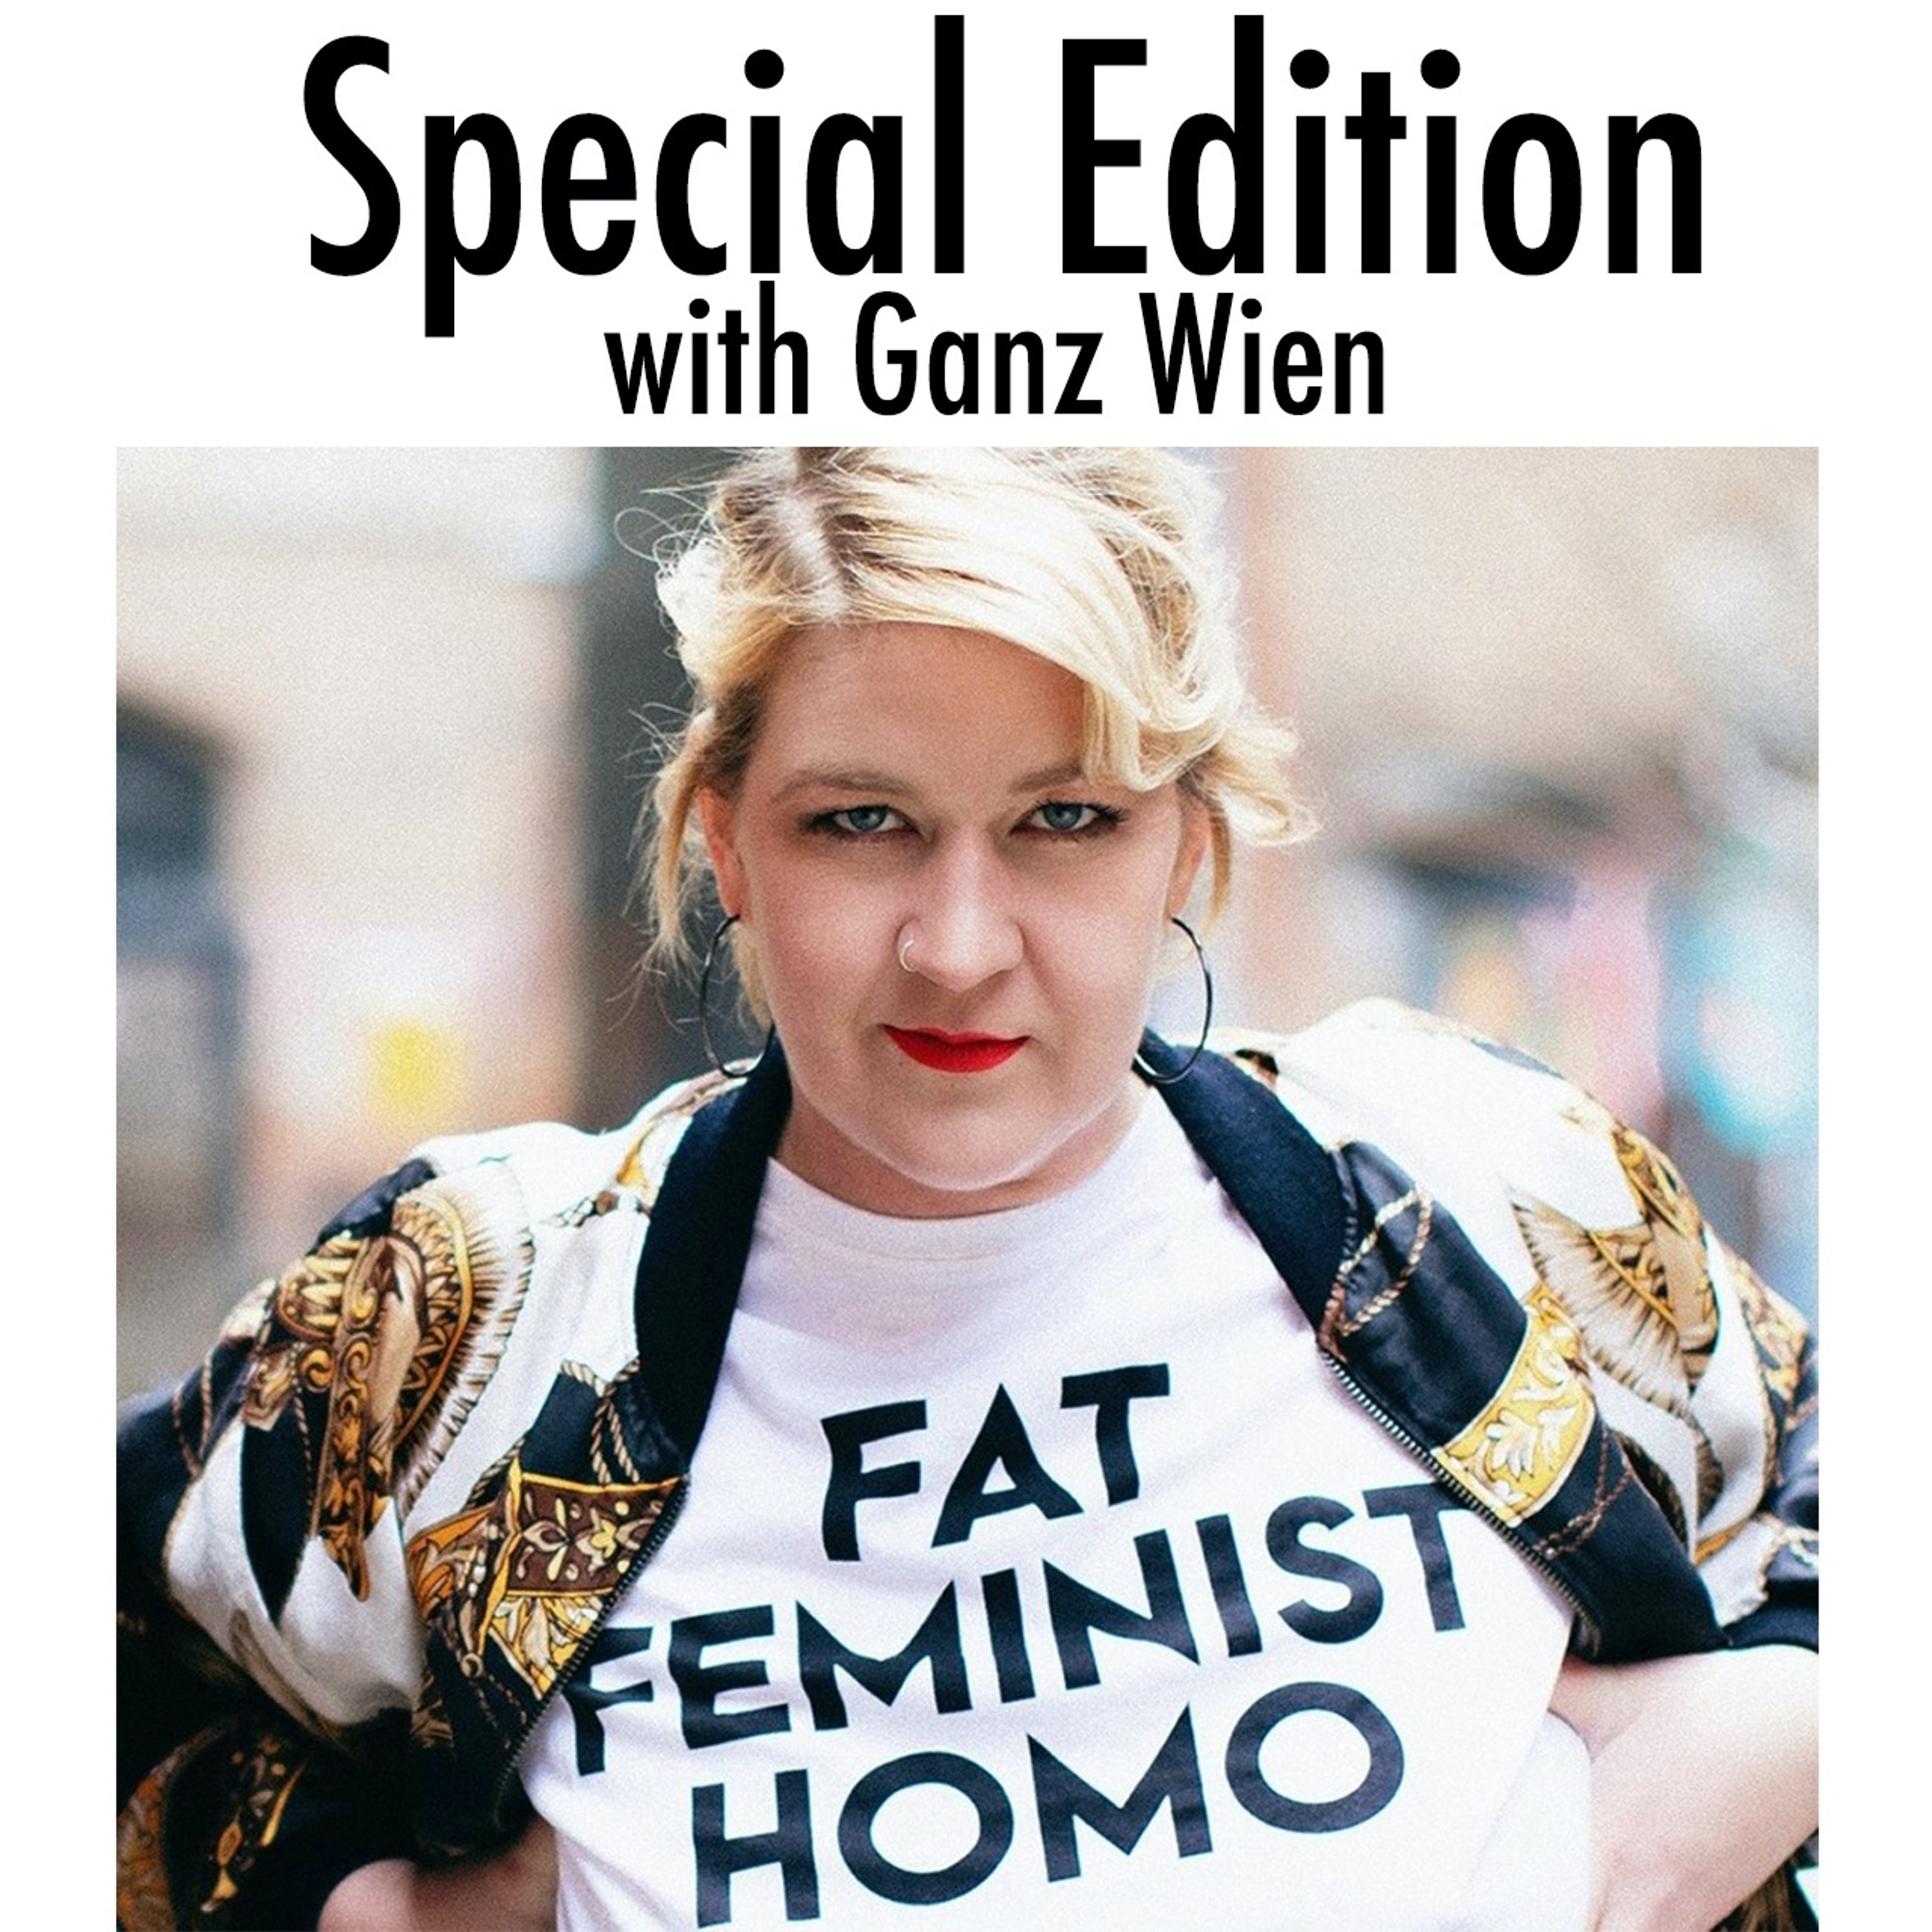 Special Edition - with Ganz Wien